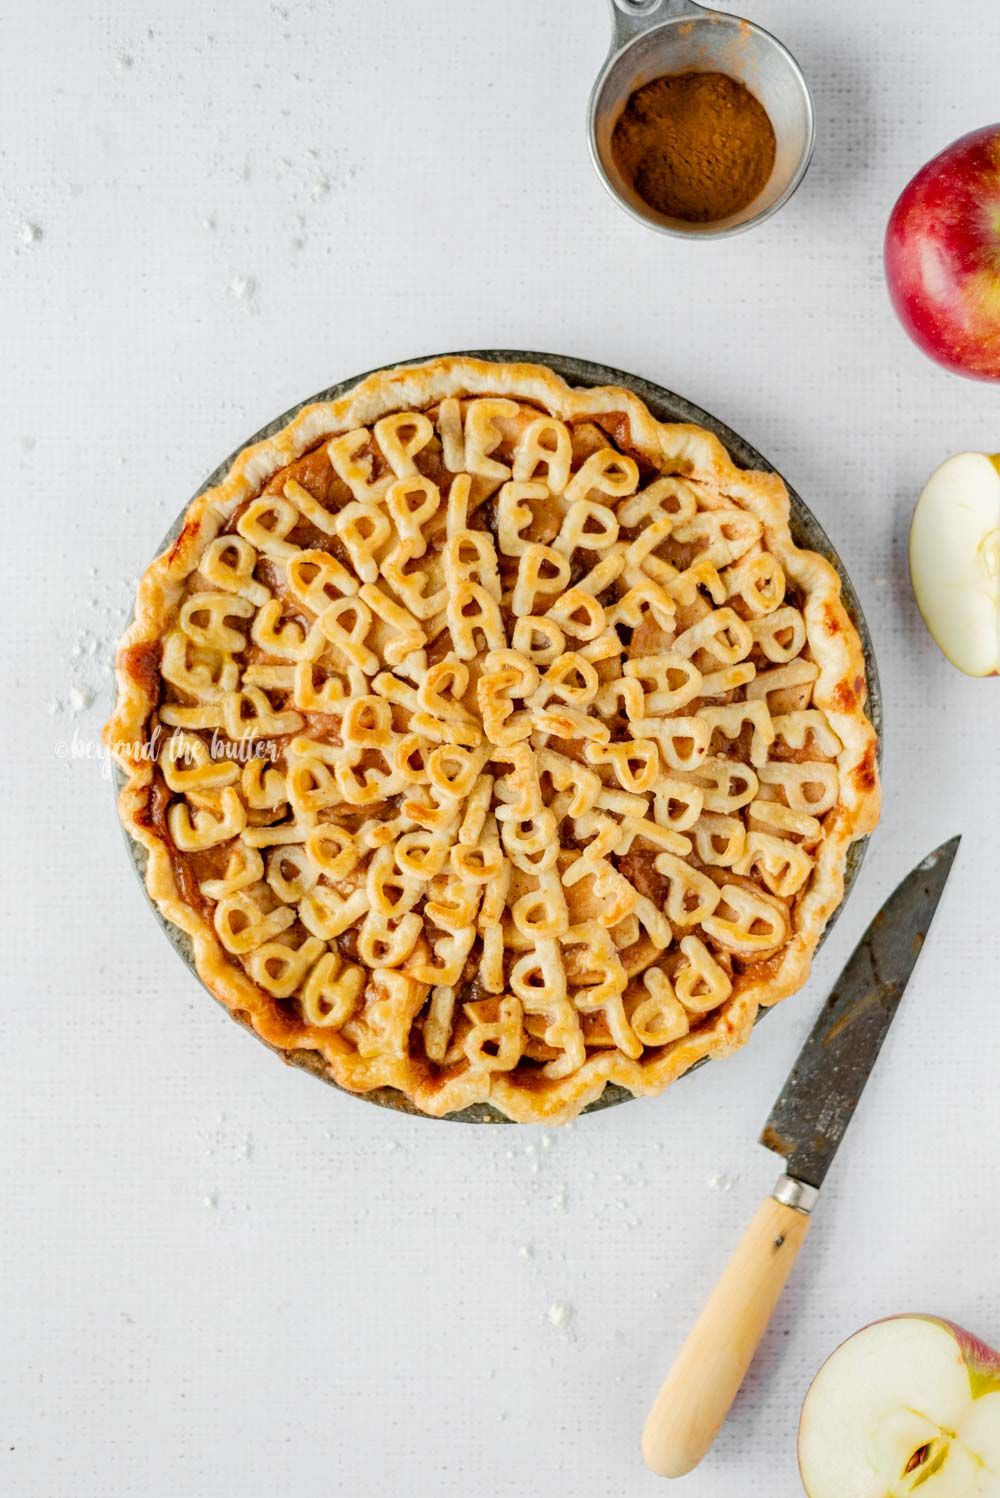 Easy Homemade Apple Pie Recipe Homemade Apple Pies Homemade